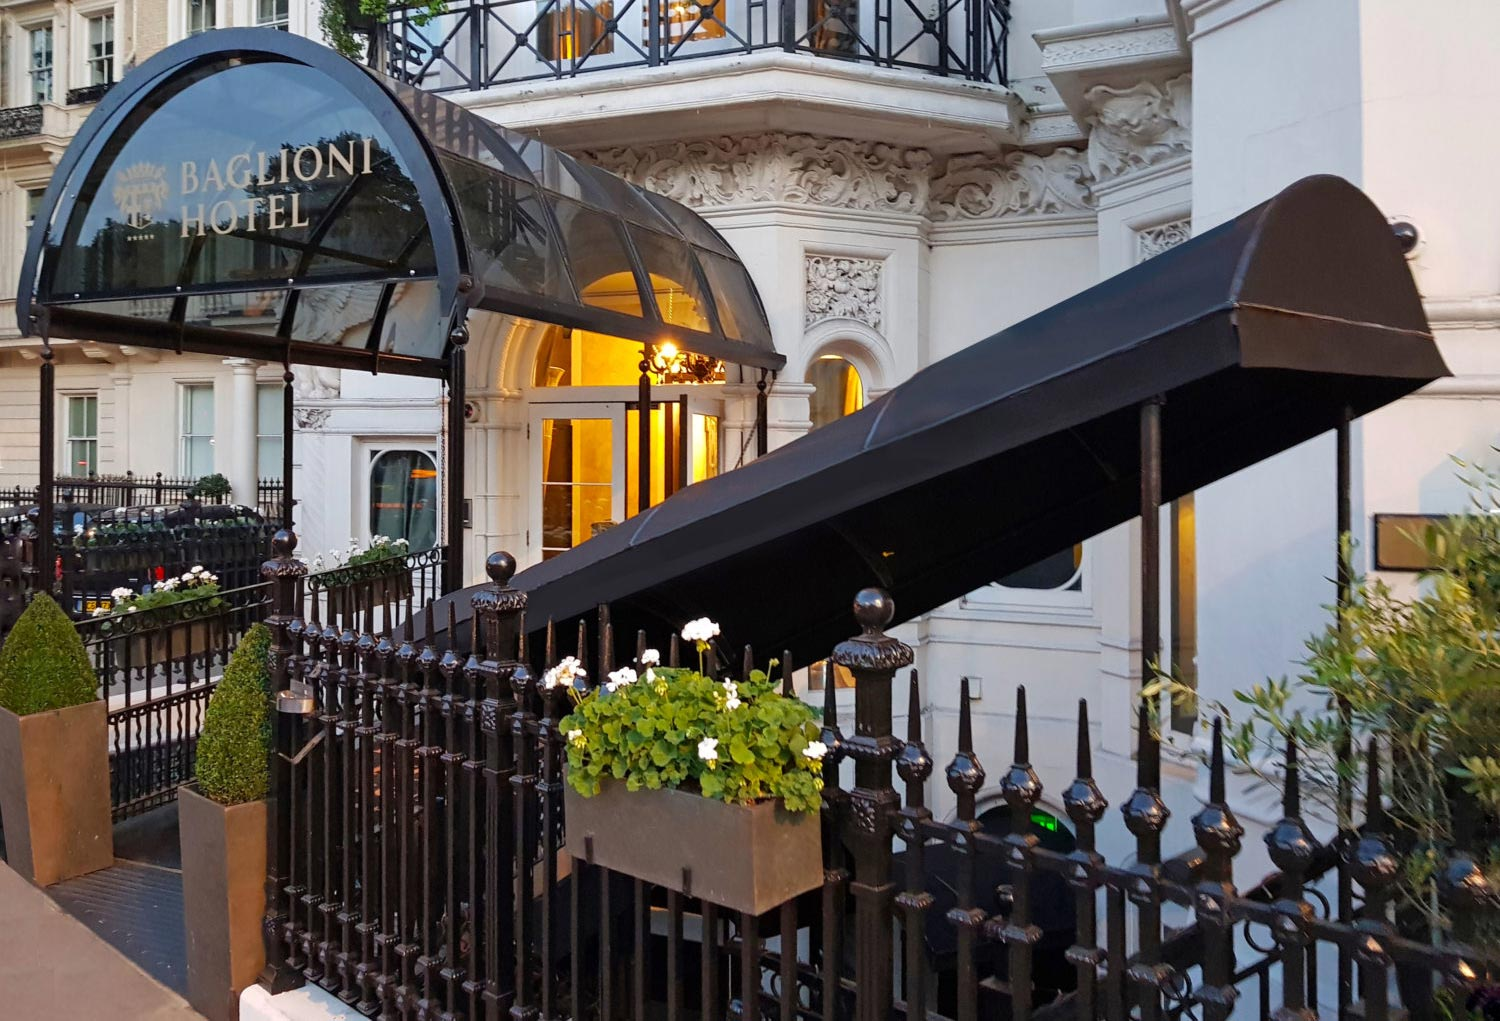 Deans hotel entrance canopy